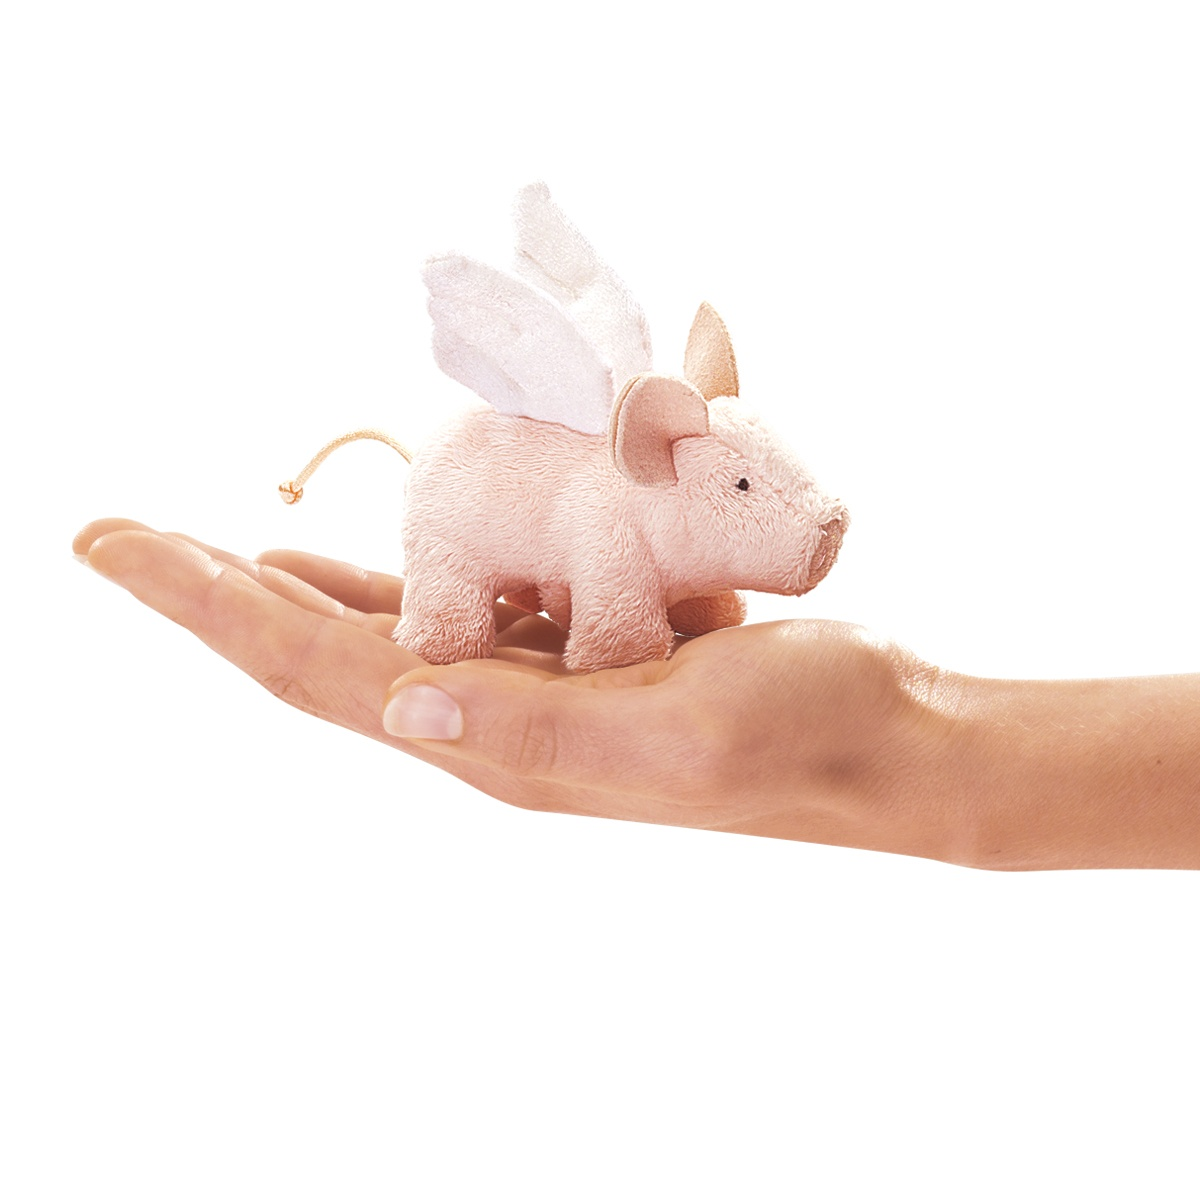 Winged Piglet or Flying Pig Finger Puppet by Folkmanis